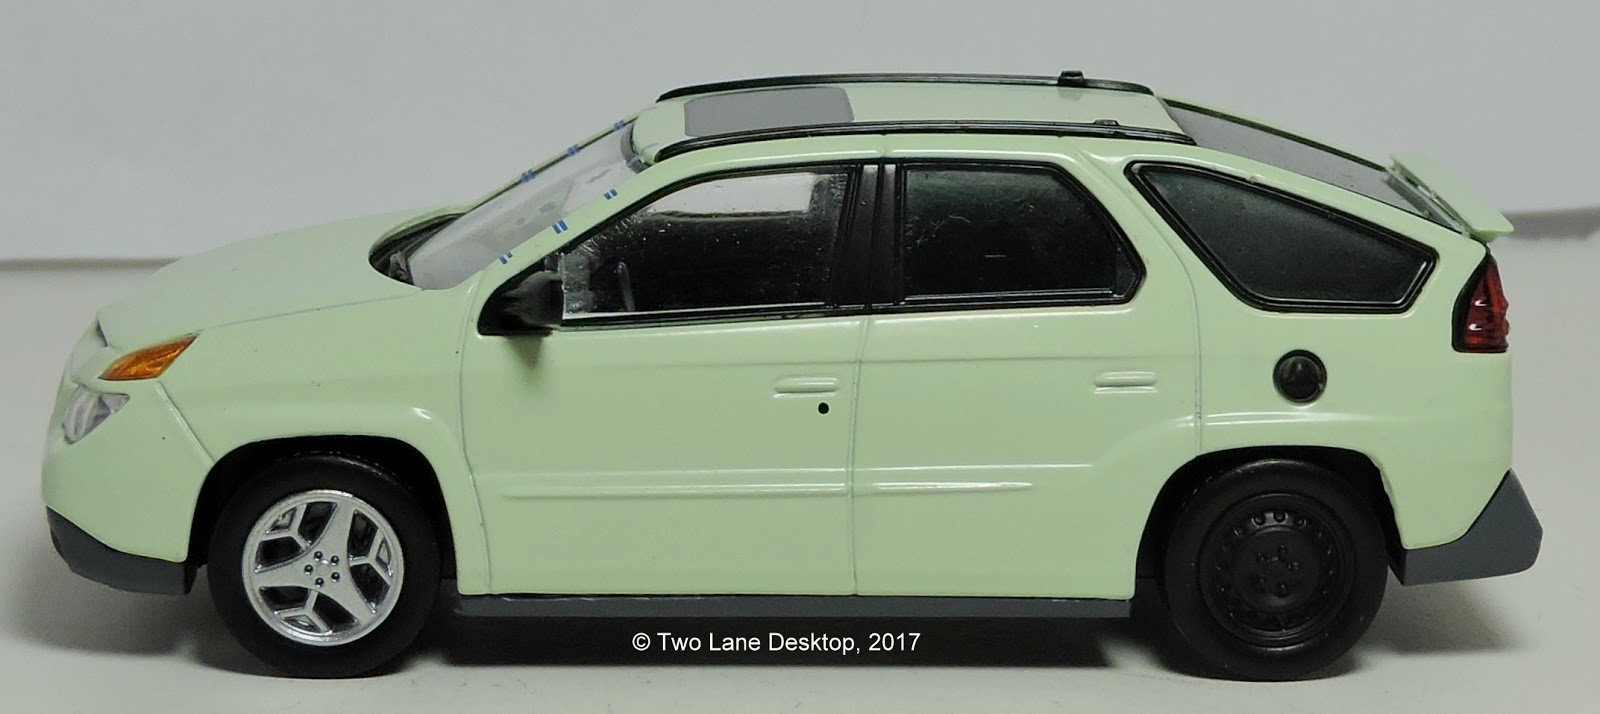 ... sales as the Aztek was discontinued in 2005. Since then fanclubs and even the TV show  Breaking Bad  has peaked interest into the once ill-advised SUV. & Two Lane Desktop: Greenlight 1:43 2004 Pontiac Aztek